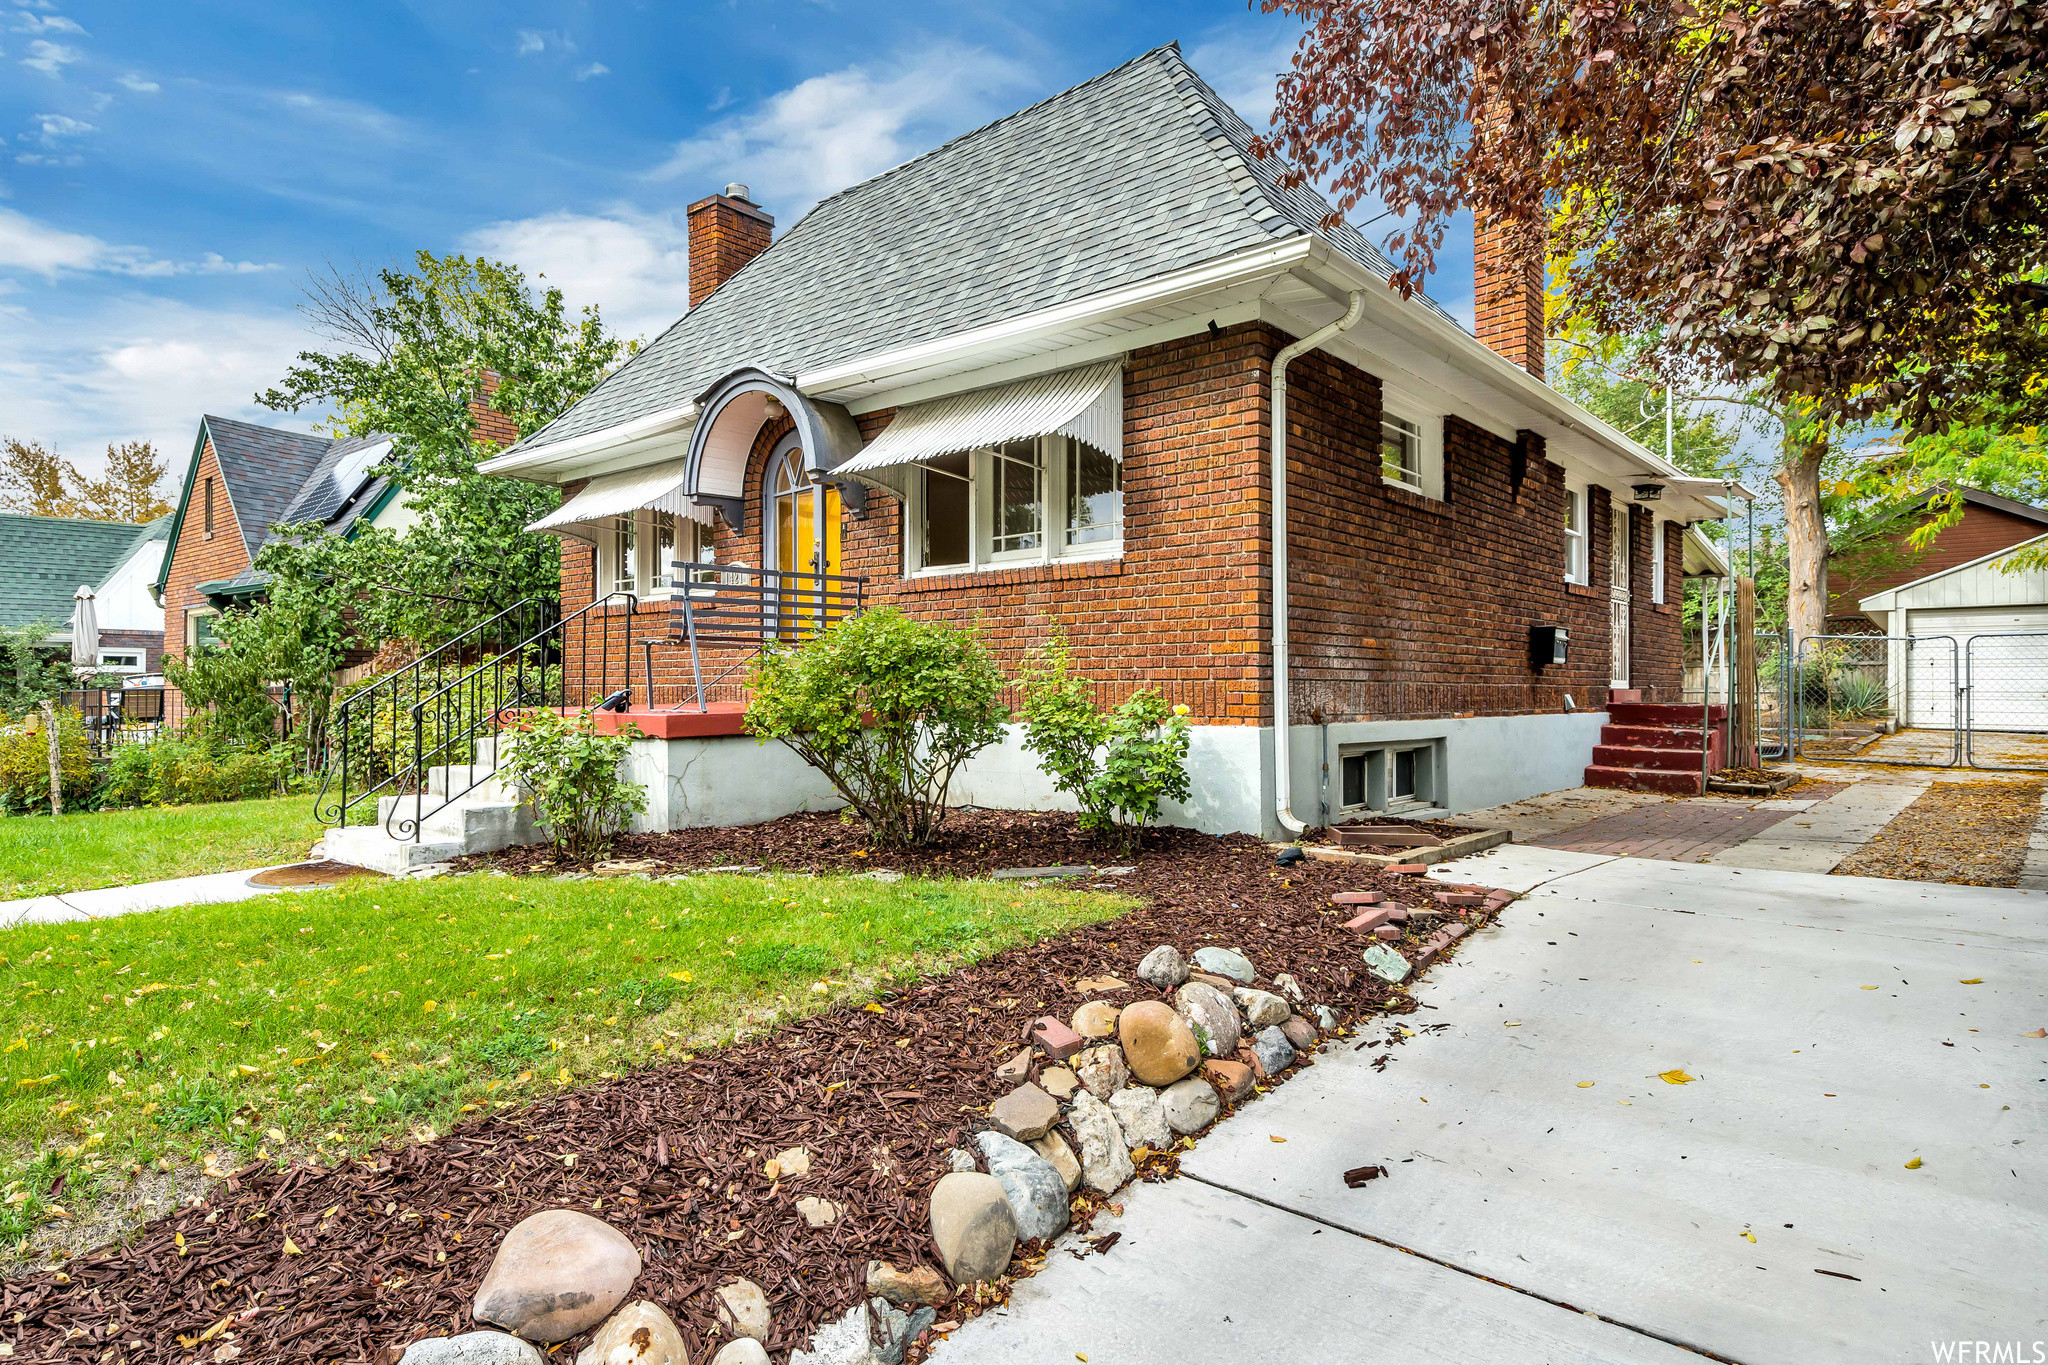 3-Bedroom House In Wasatch Hollow